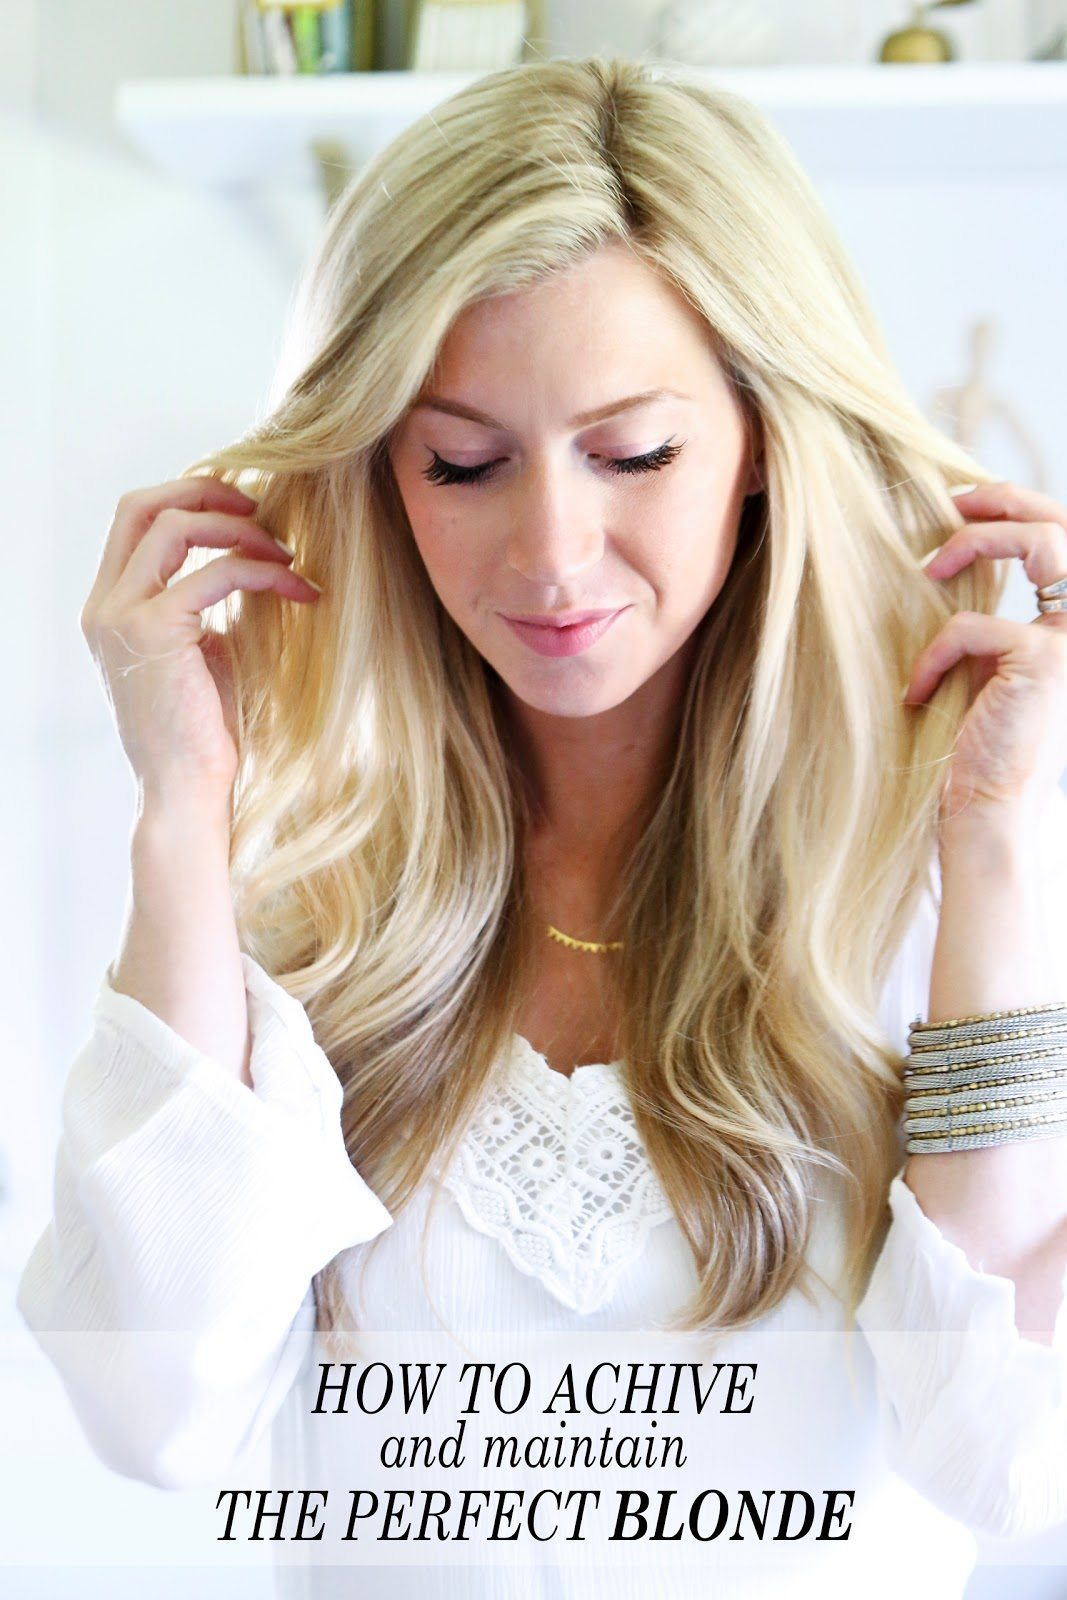 THREE TRICKS TO ACHIEVING AND MAINTAINING THE PERFECT BLONDE